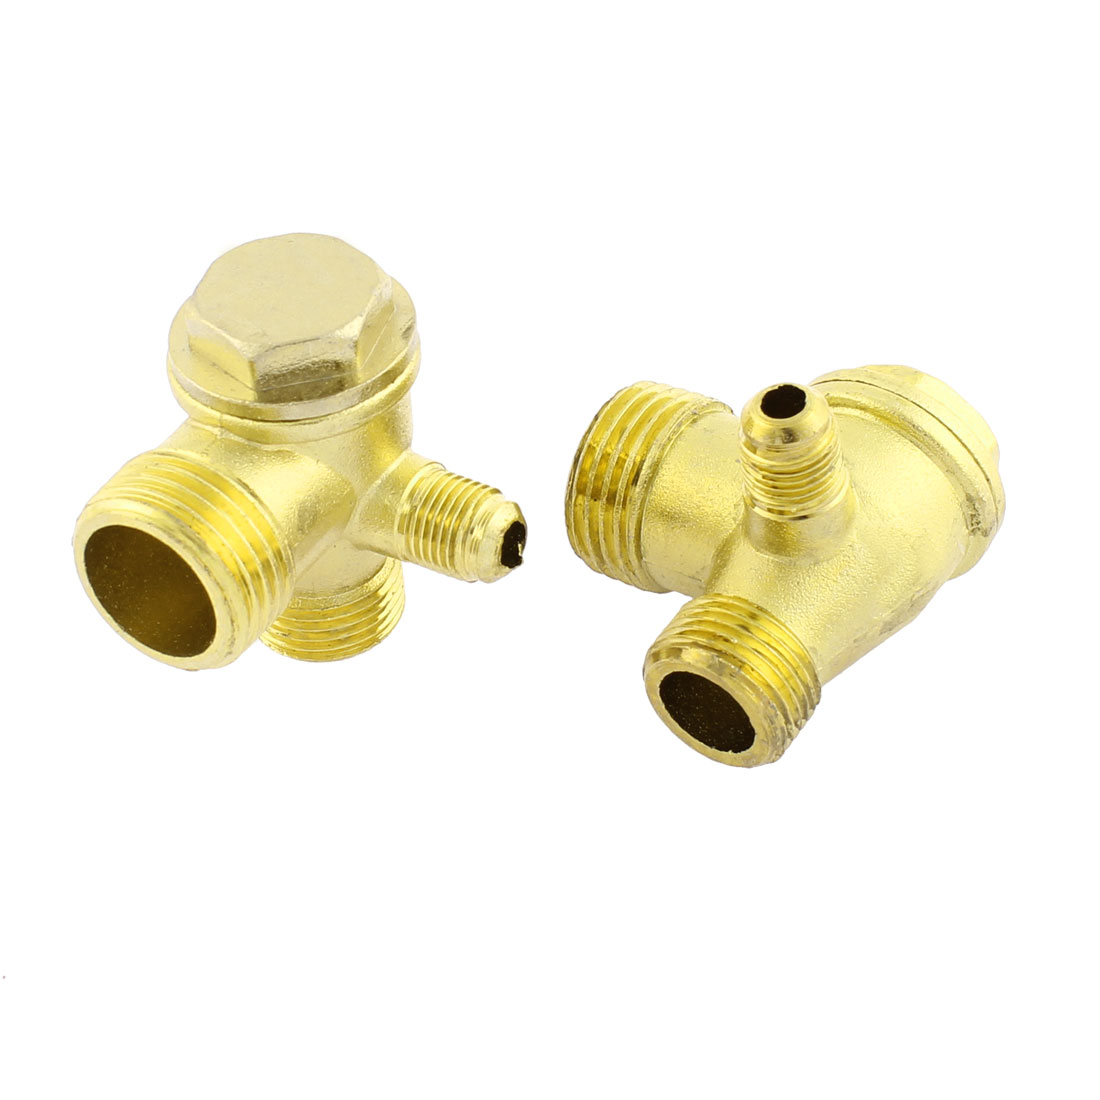 Air Compressor 3 Port Brass Tone Male Thread Check Valve Connector 2pcs